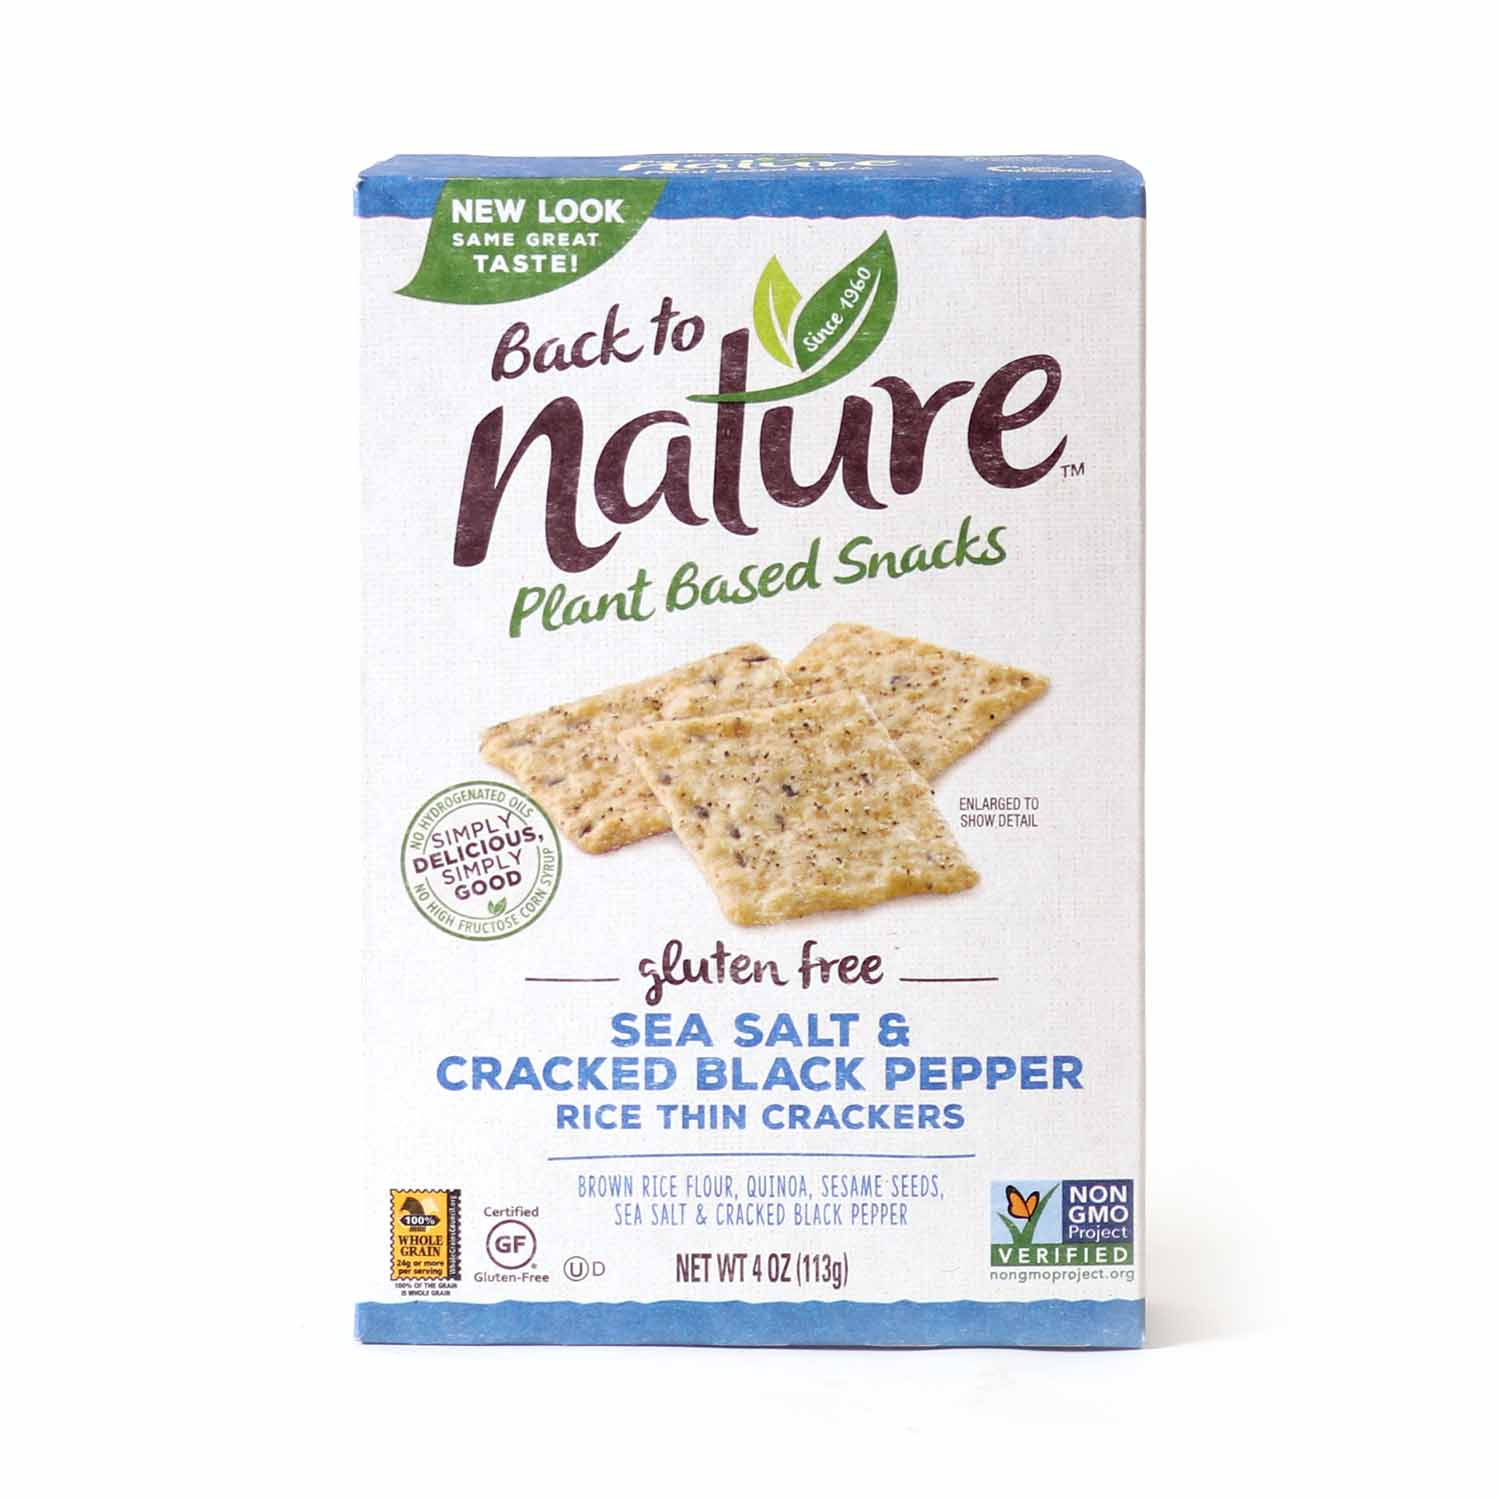 Rice Thin Crackers, Sea Salt & Cracked Pepper-Gluten Free